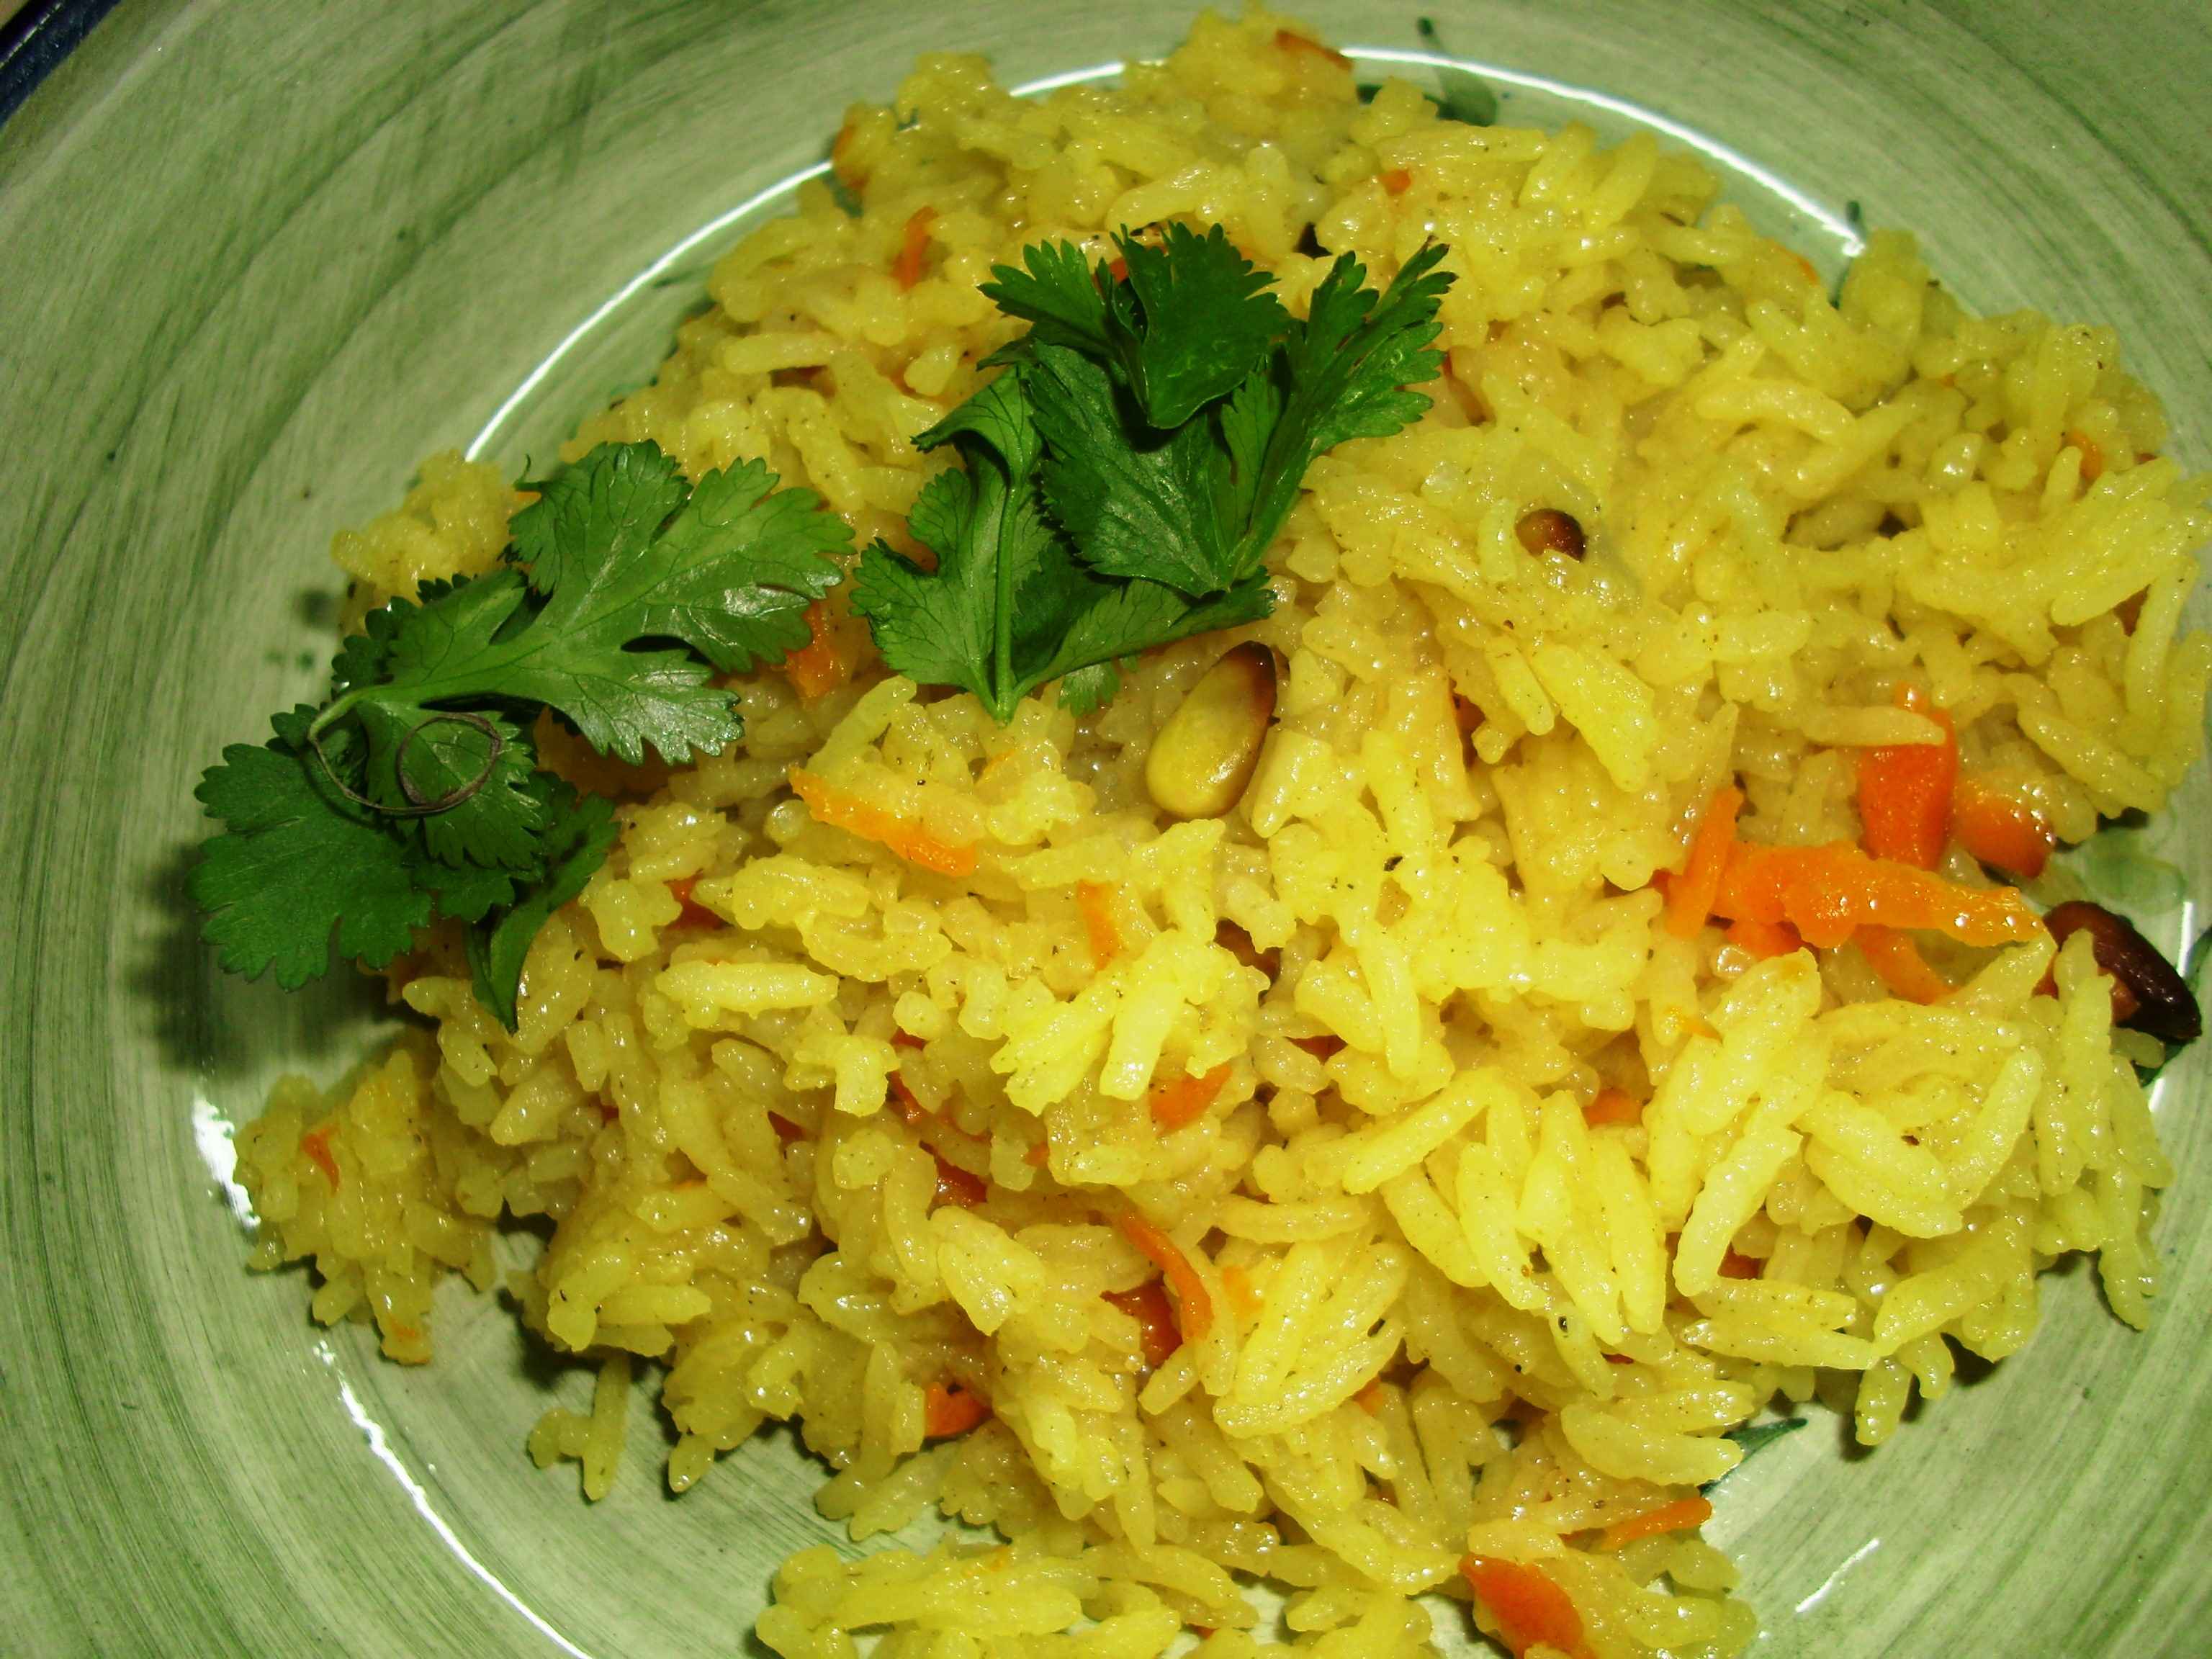 Kinds of arabic rice why are arabic rice so different from thai rice arabic rice how to make arabian rice with chicken youtube forumfinder Choice Image